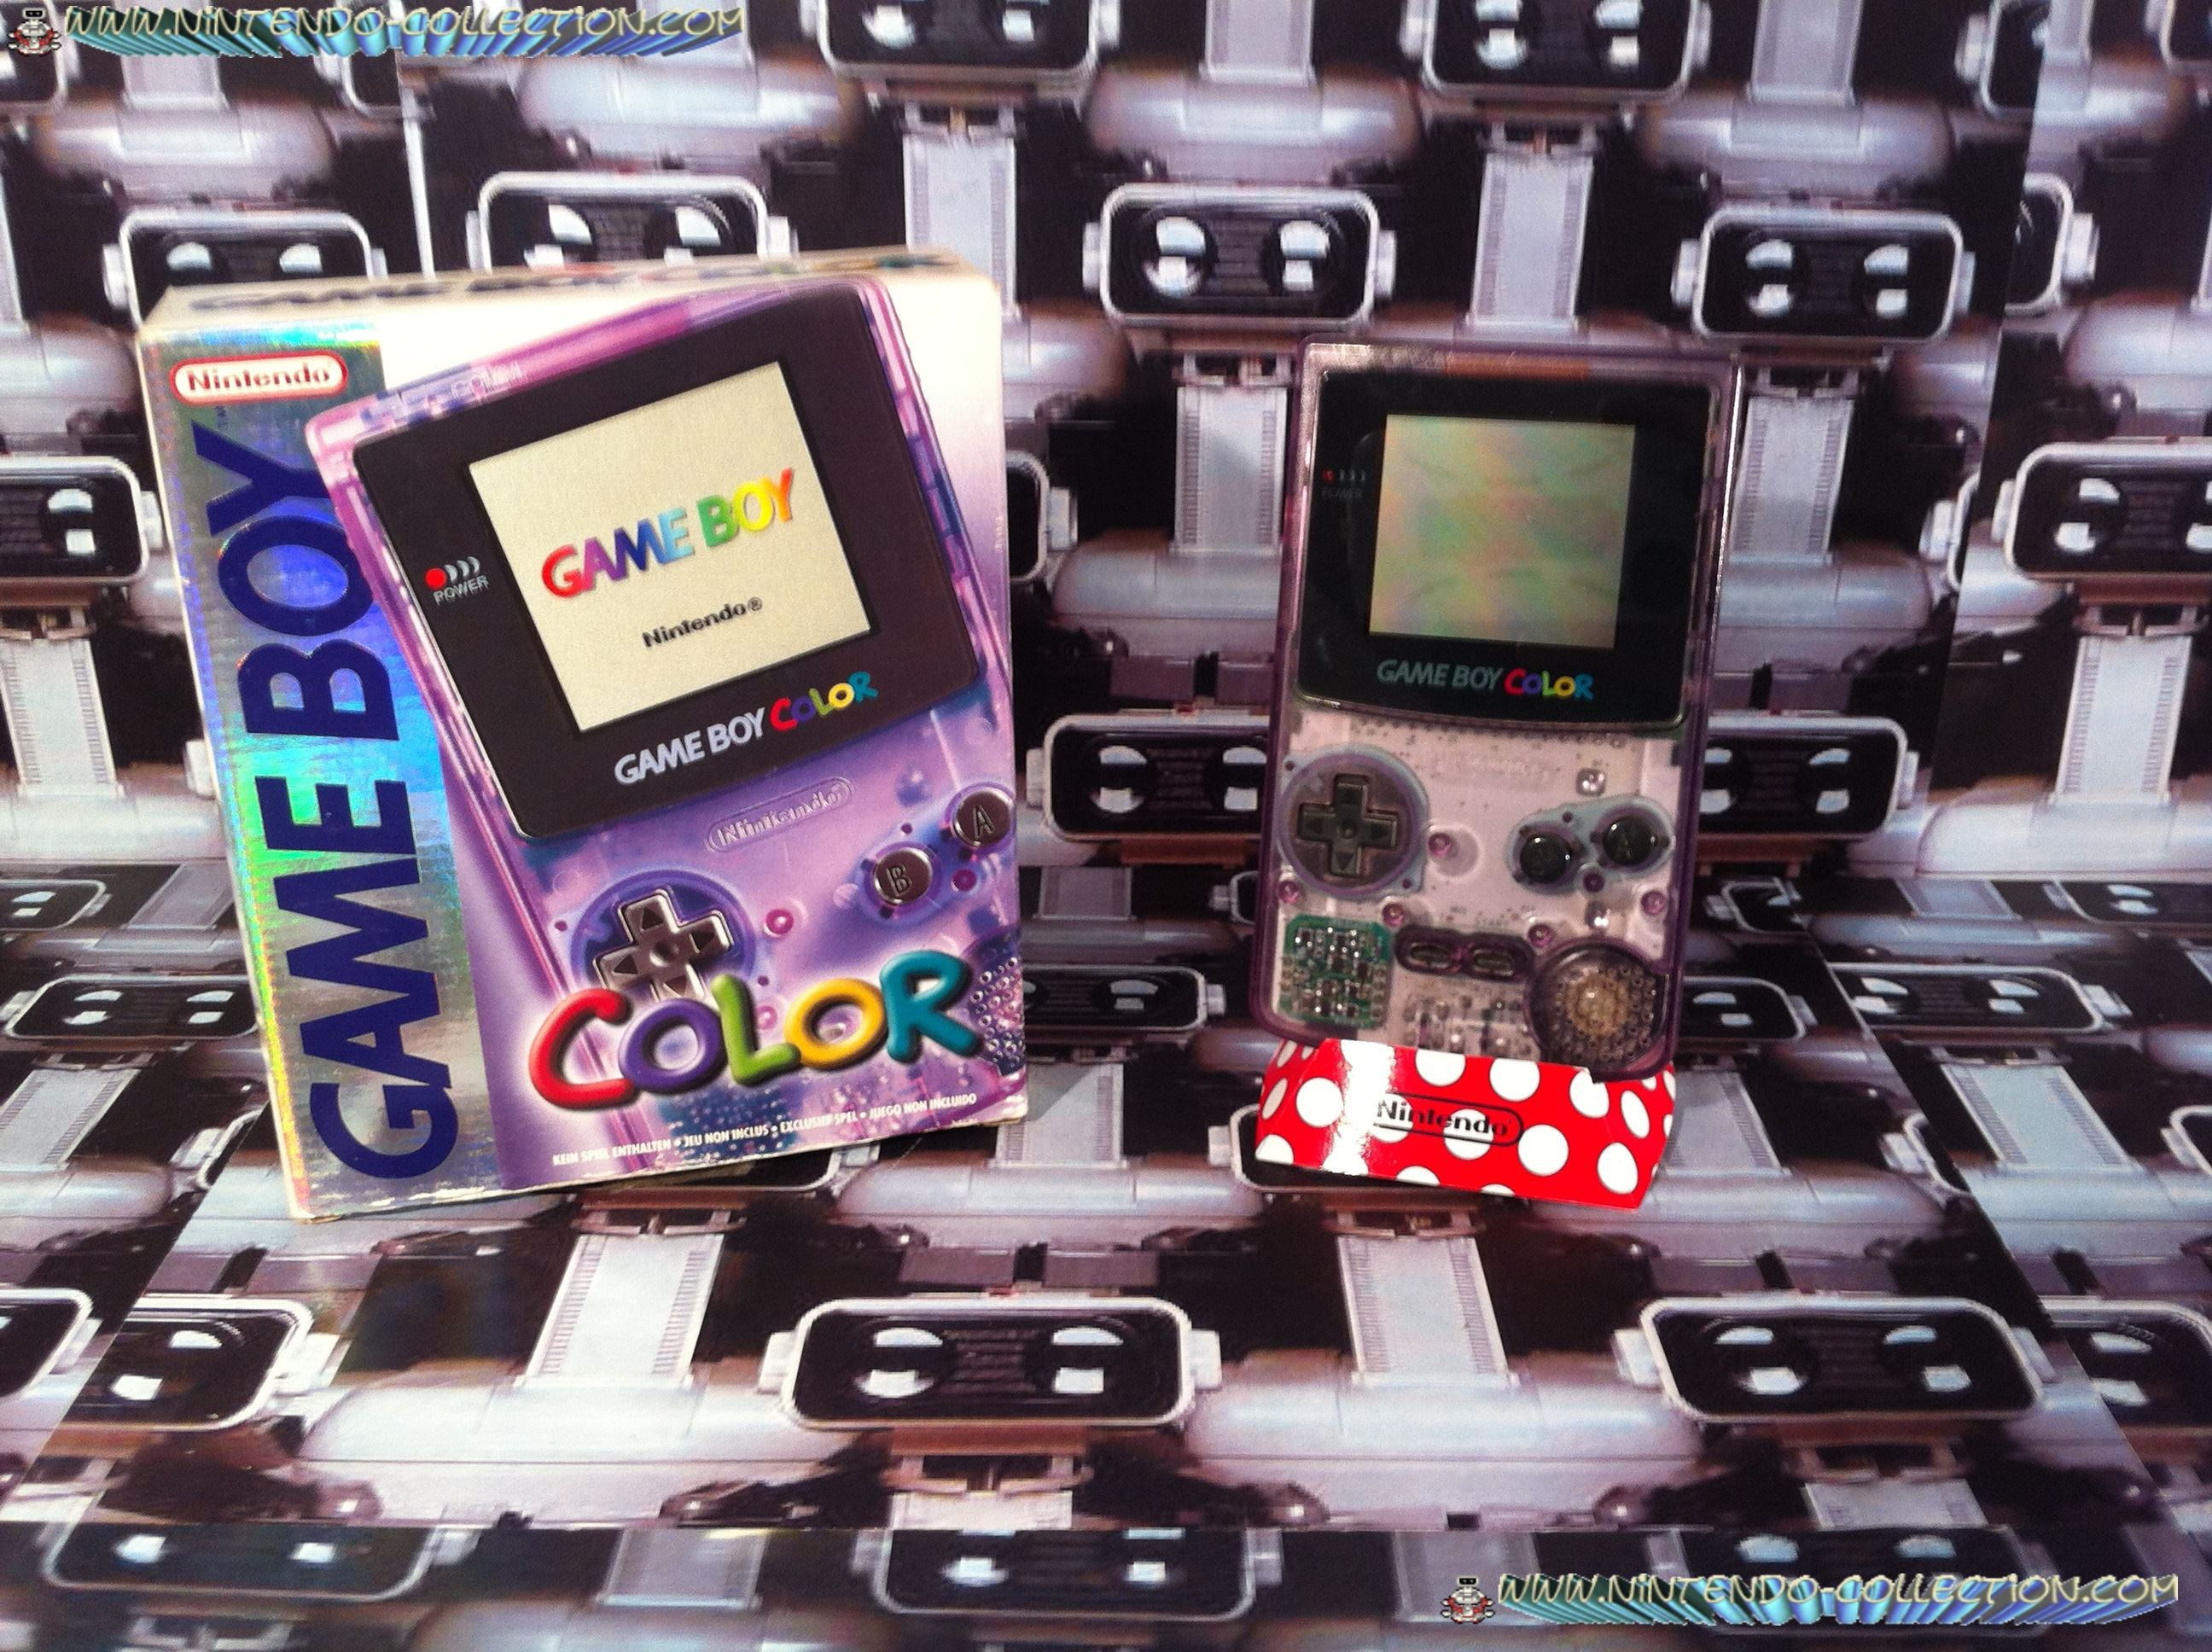 www.nintendo-collection.com - Gameboy Color violette transparente Clear Purpple edition european eur